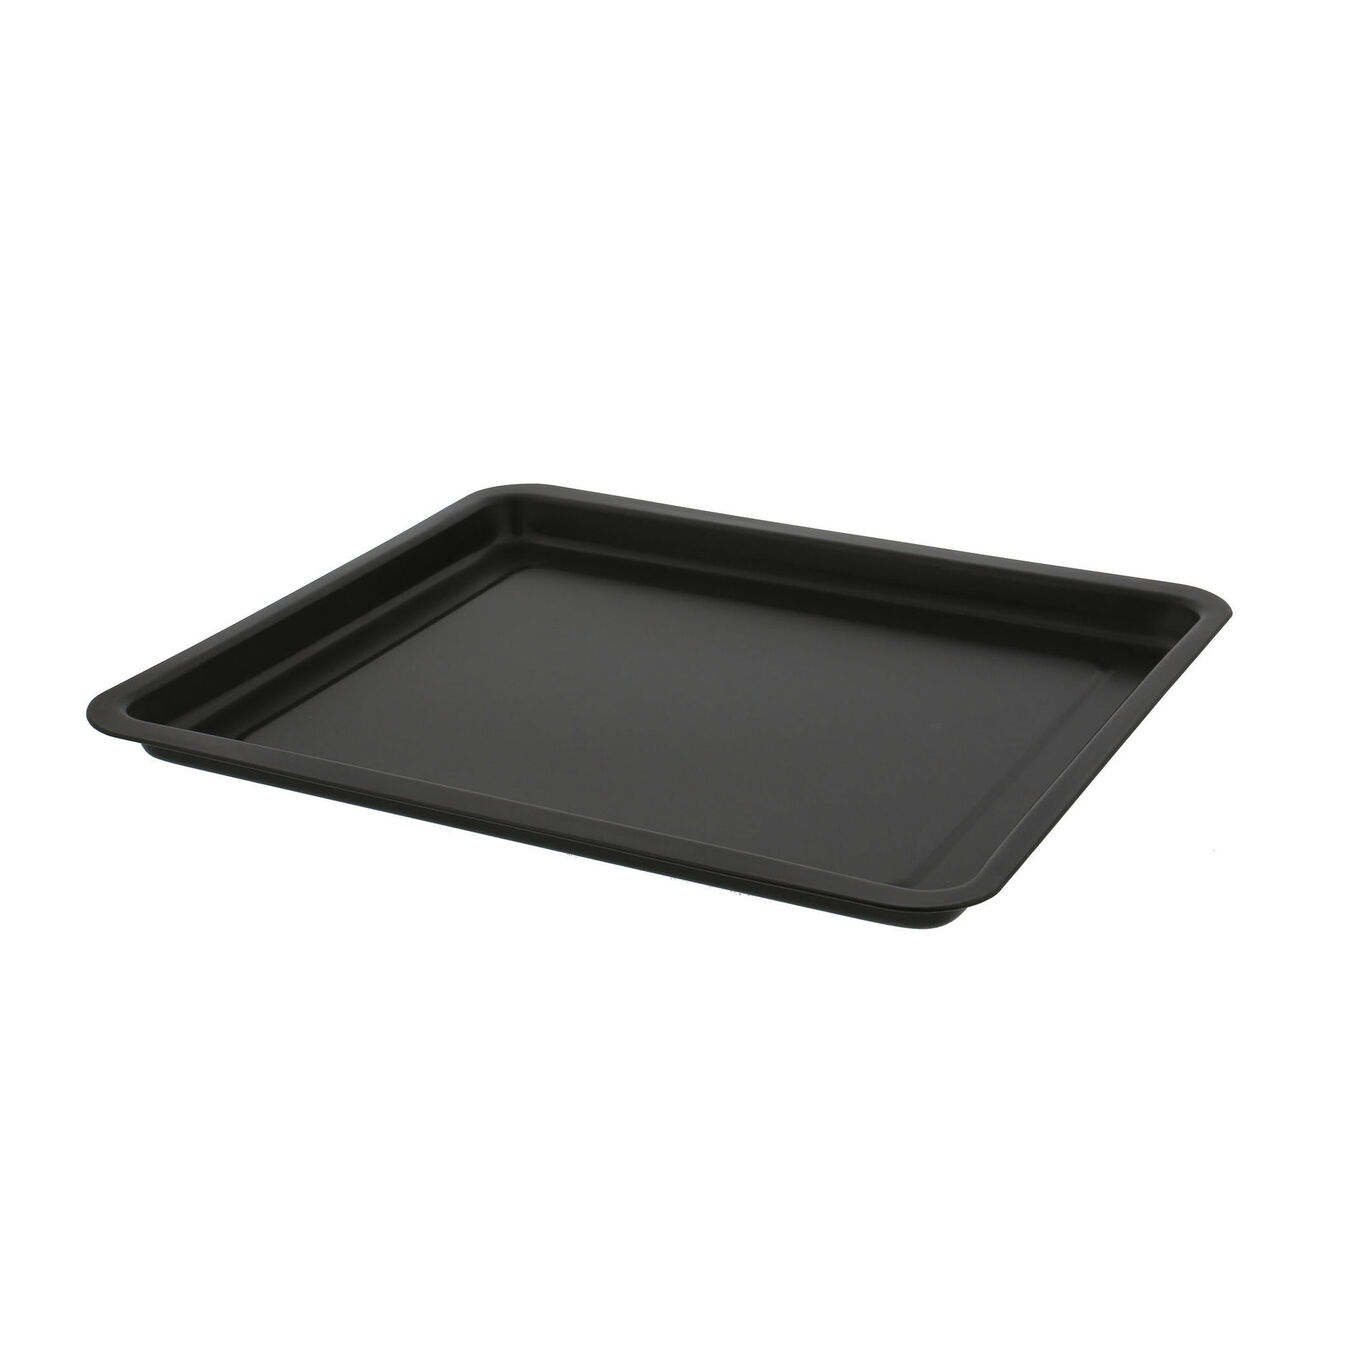 12.5 x 14.5-inch Jelly Roll Pan,,large 1